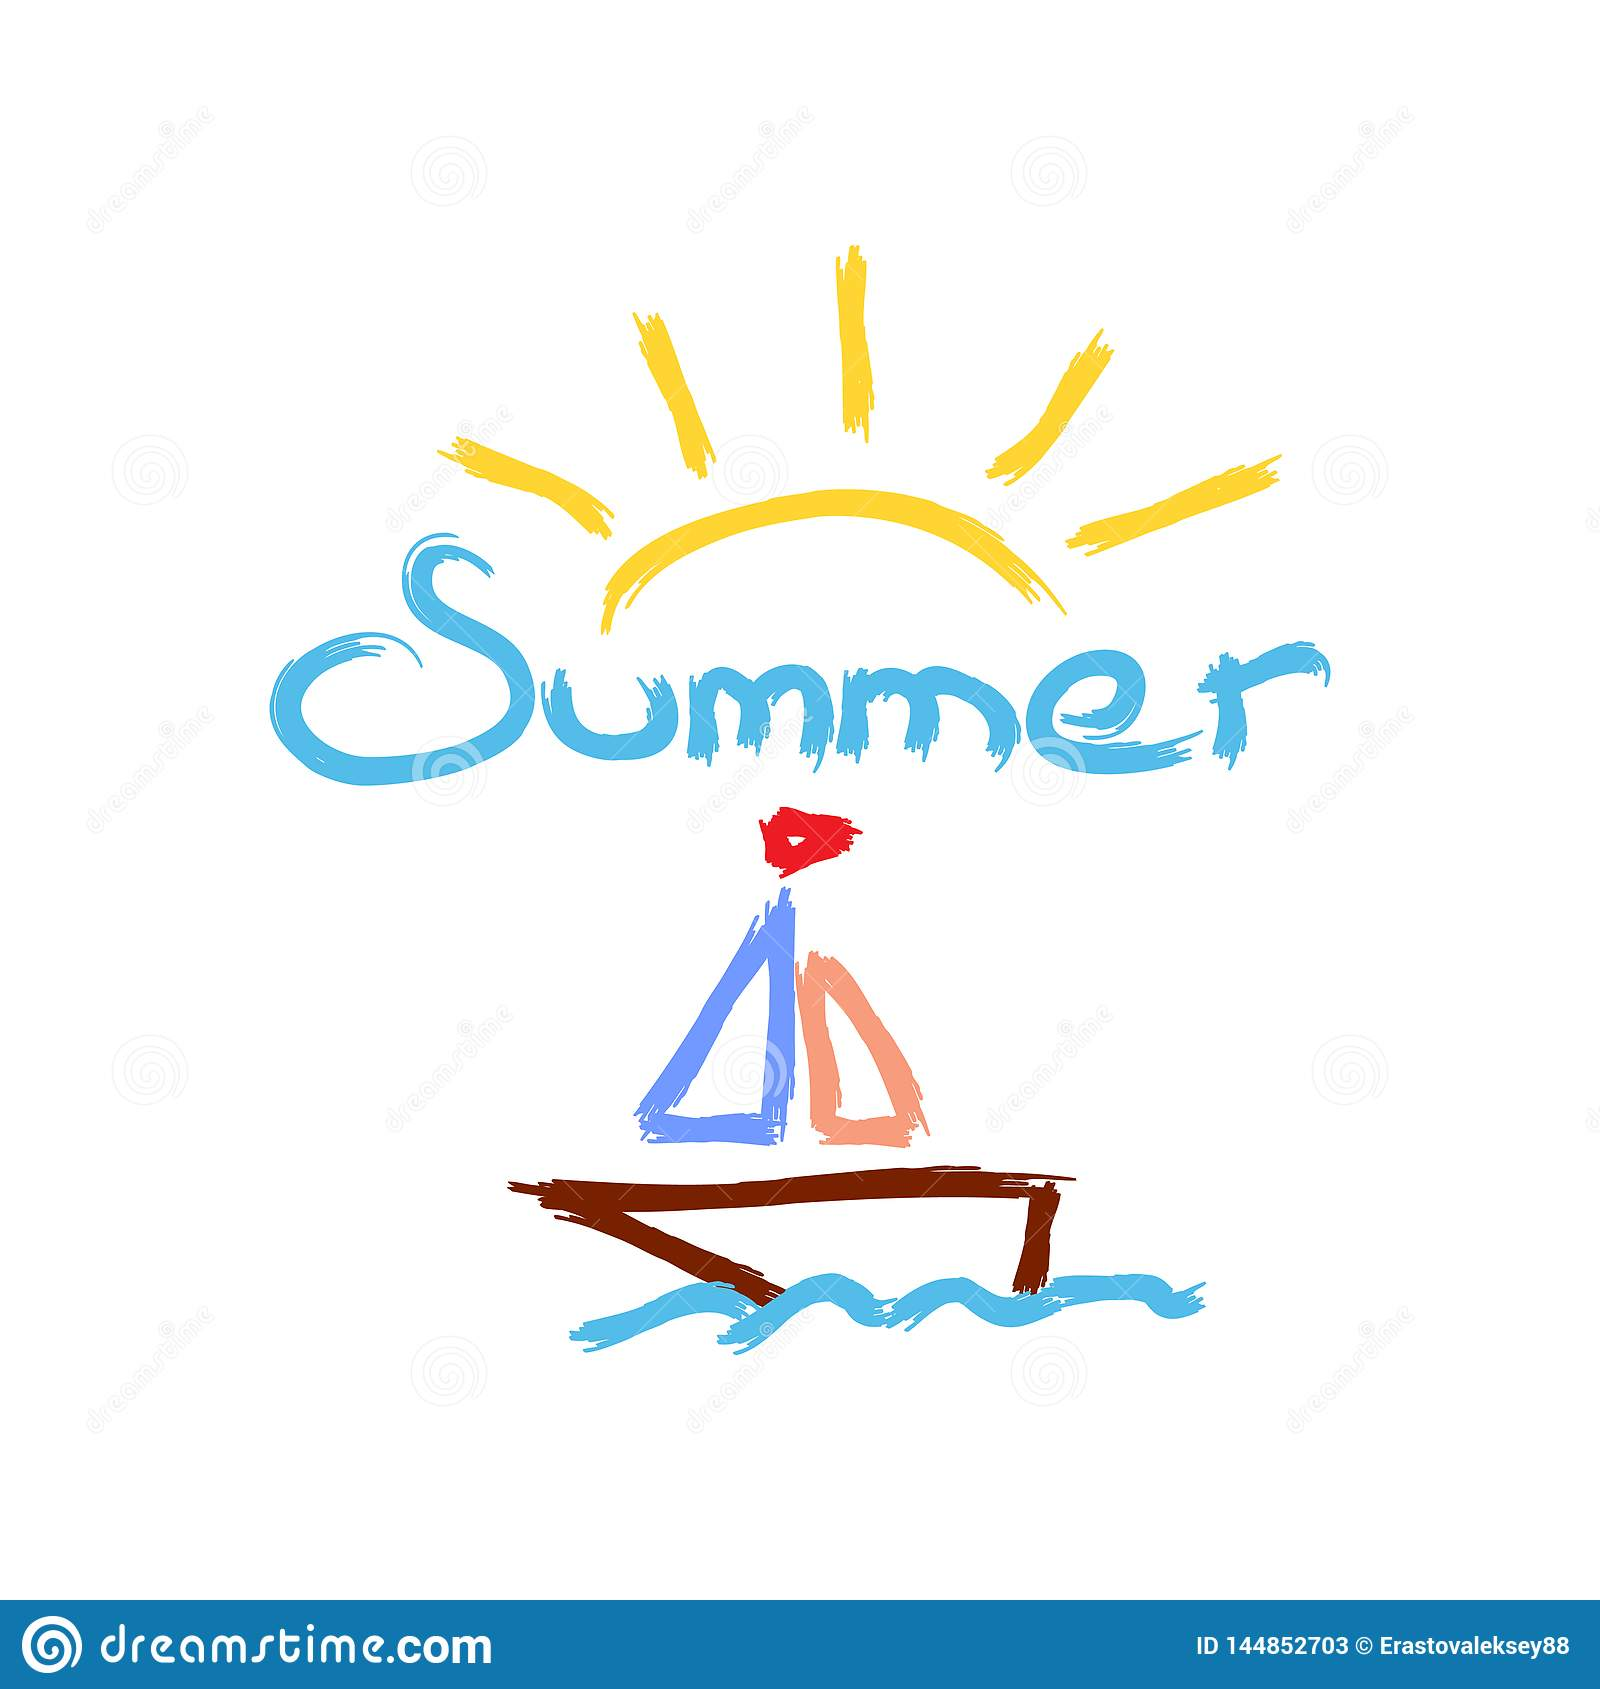 Sun, sailboat and text Summer painted with watercolor brush. Sketch drawn by hand. Vector Illustration.